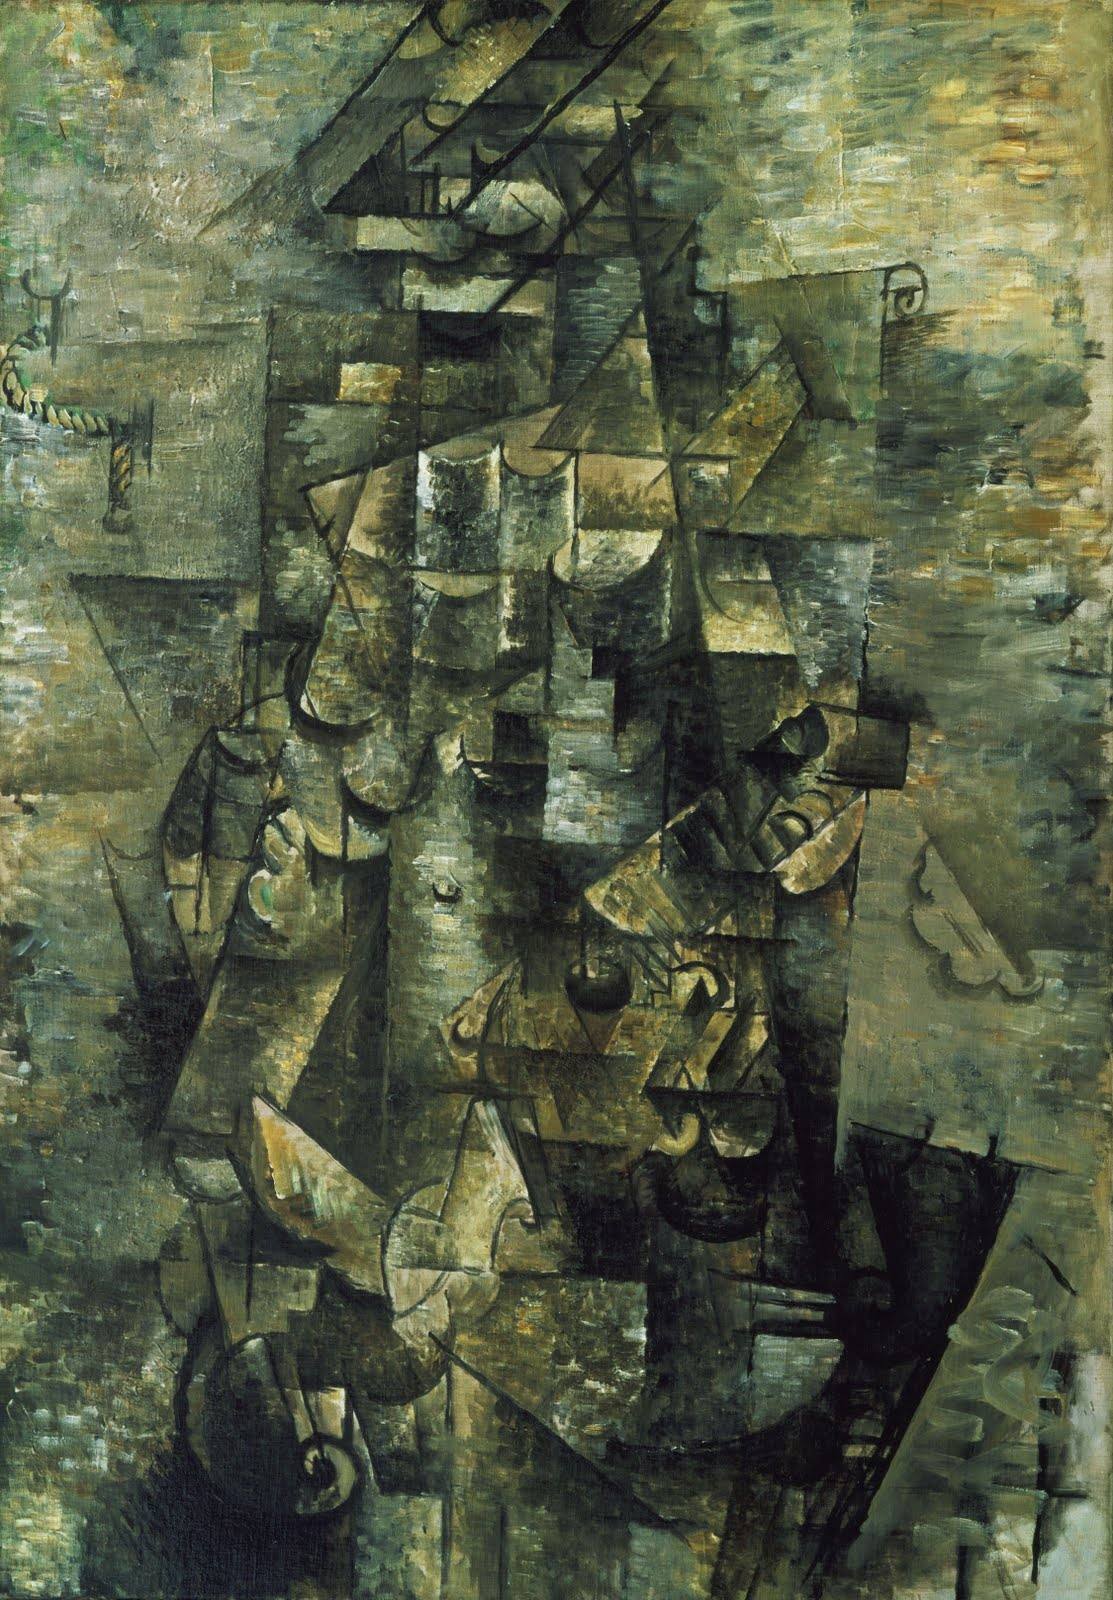 03 Georges Braque - Man with a Guitar